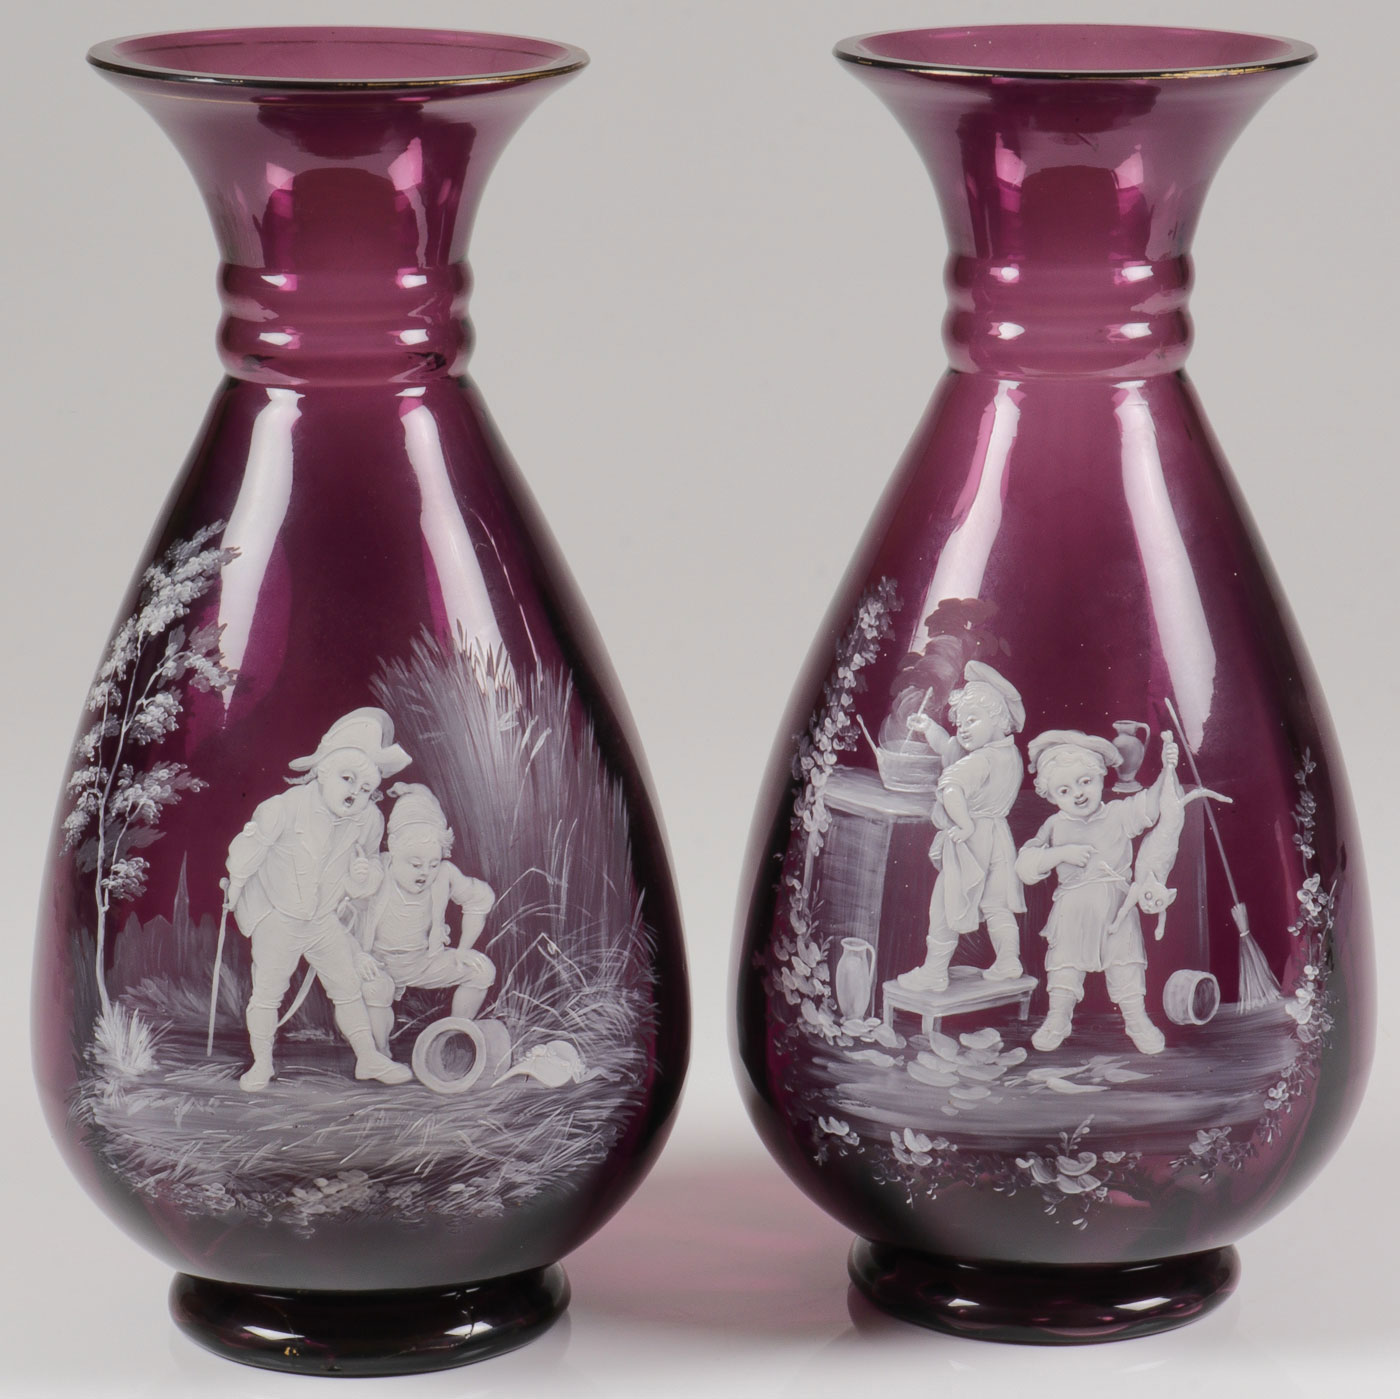 Lot 56 - PAIR OF SPECTACULAR MARY GREGORY VASES, C. 1890